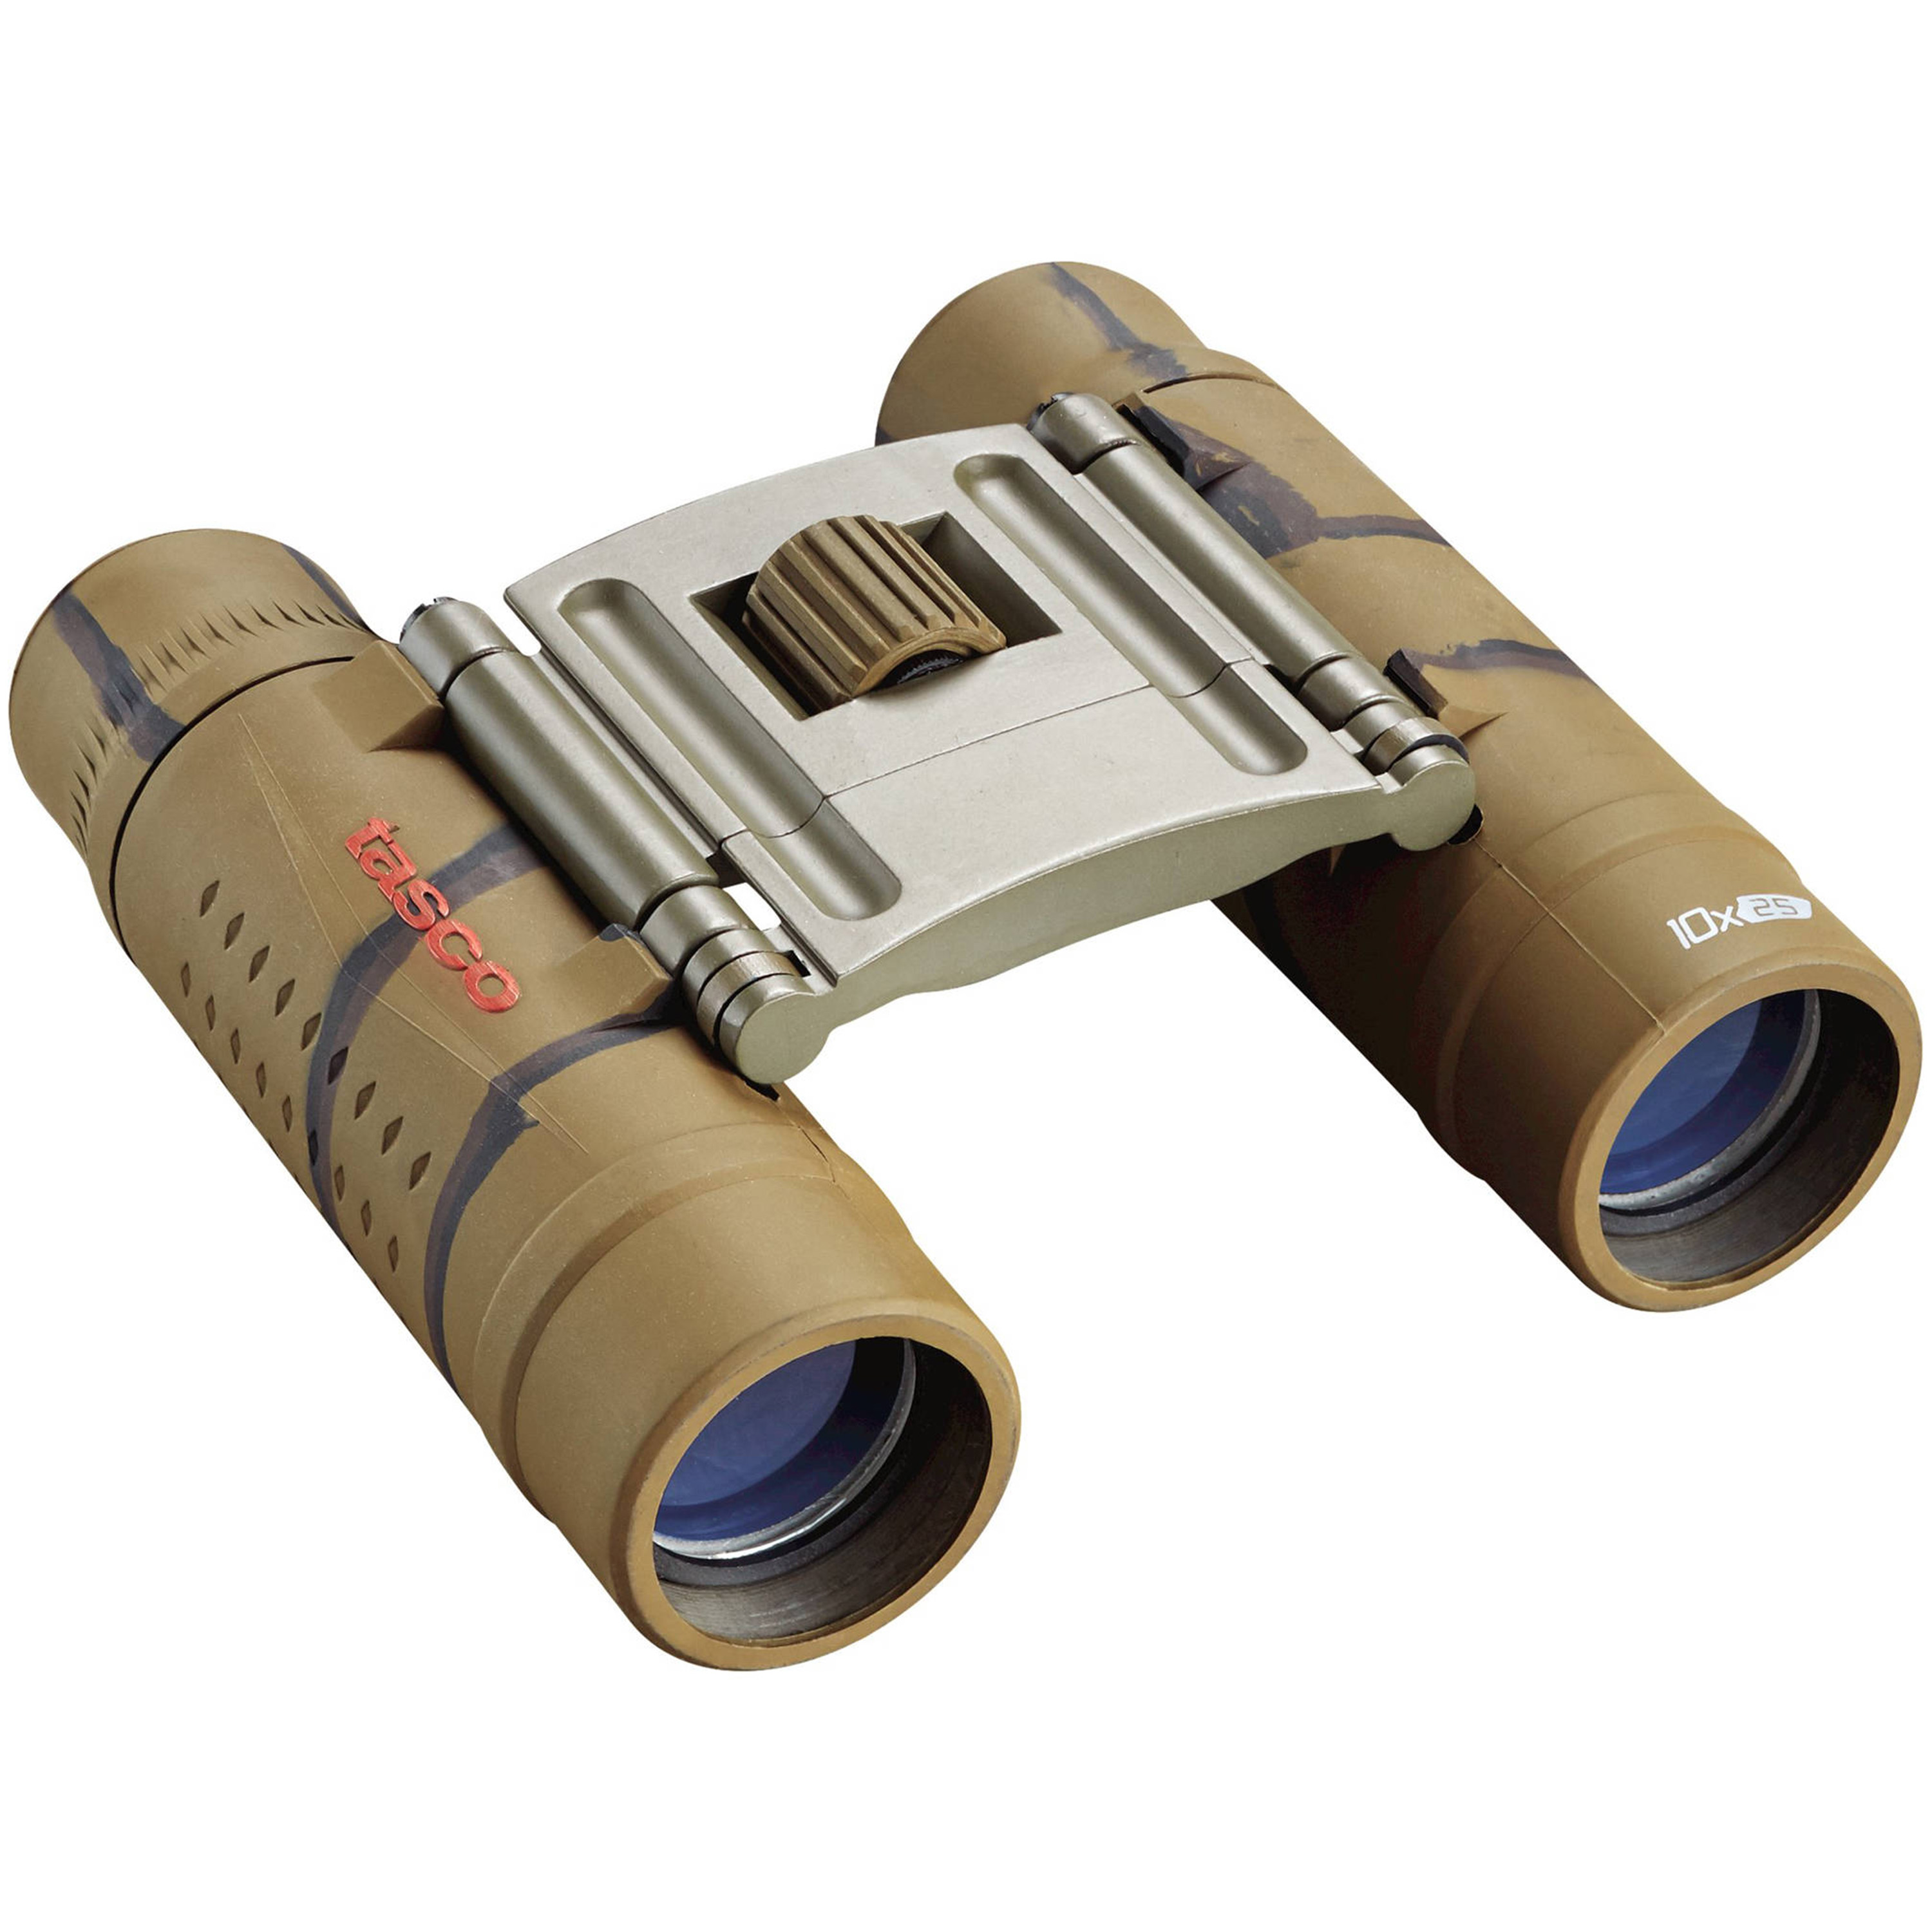 Tasco Essentials Binoculars 10x25mm, Roof Prism, Brown, Boxed